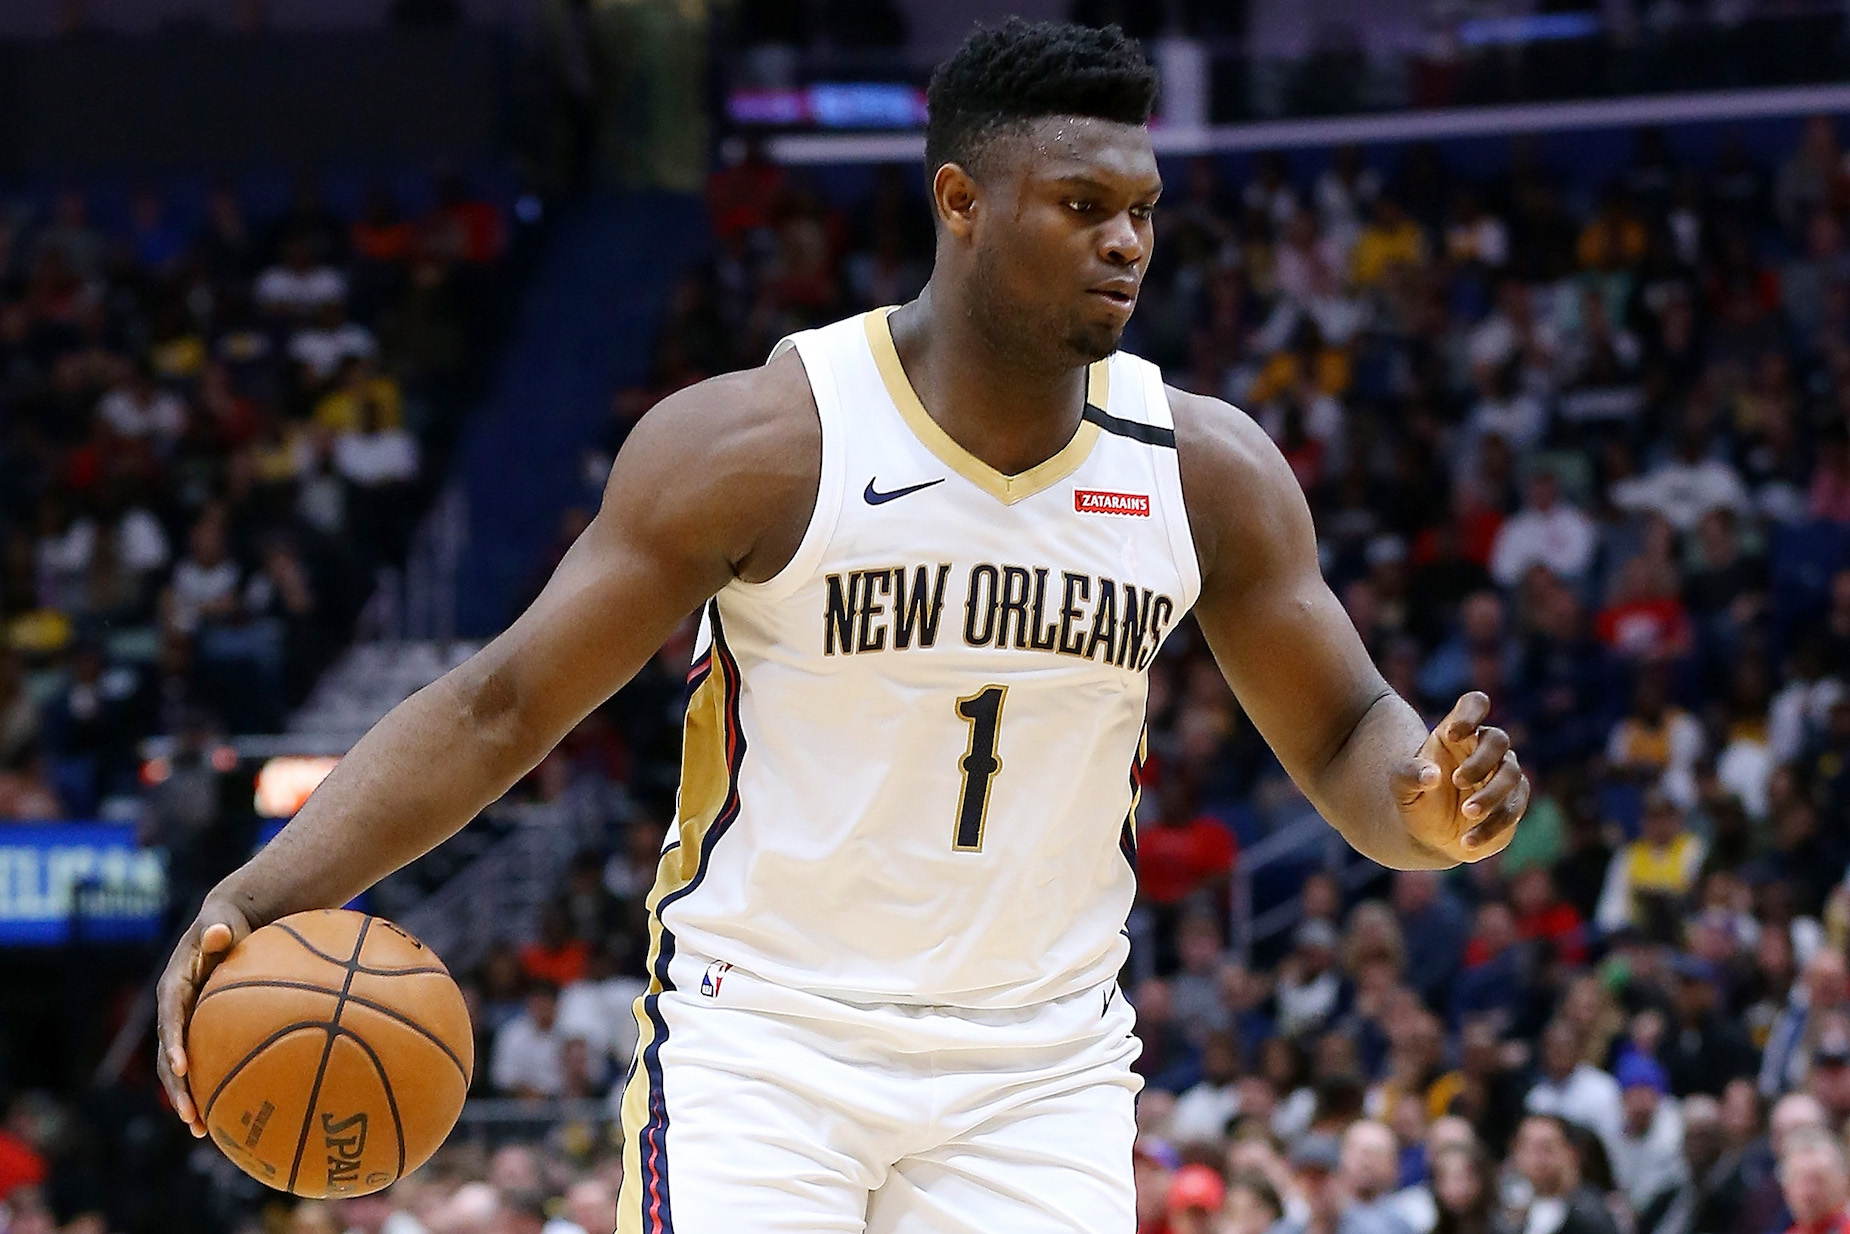 How does Zion Williamson's shoe size compare to the rest of the NBA?